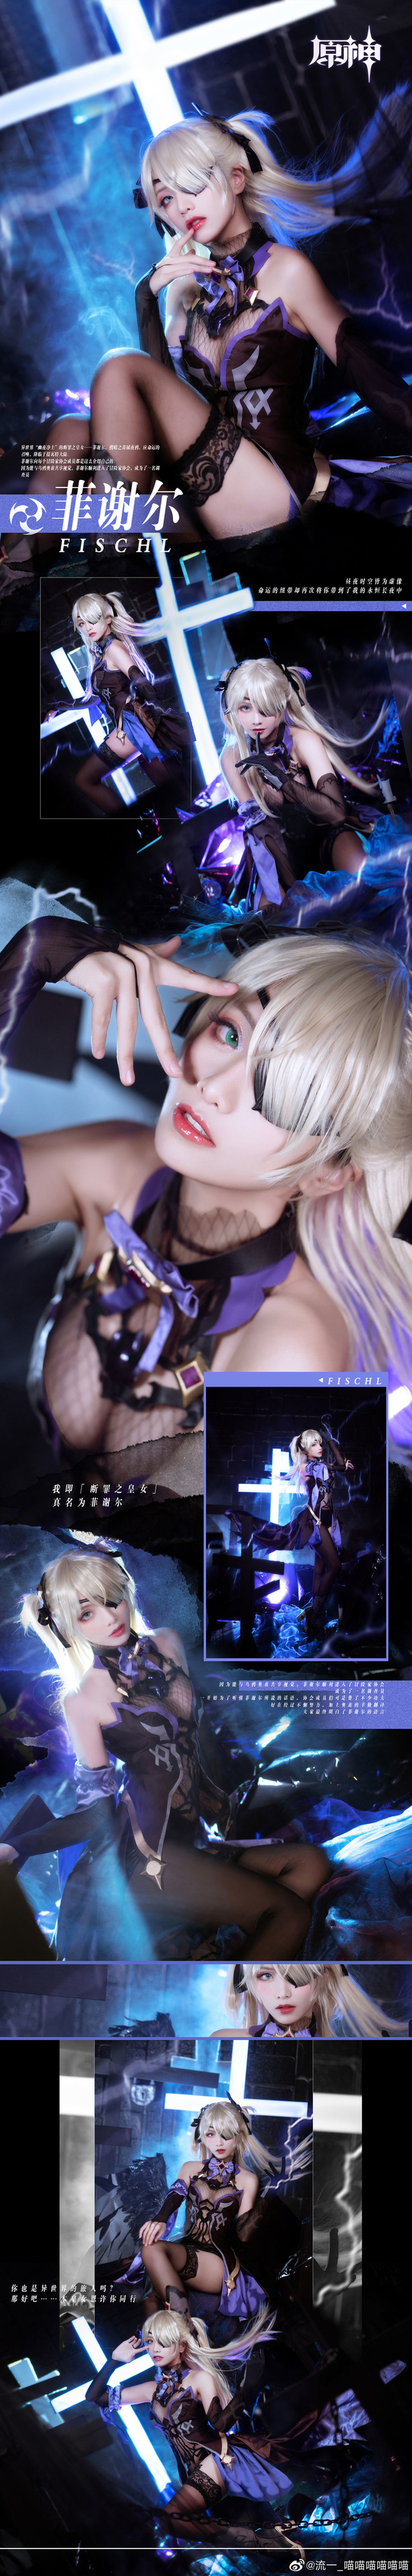 Female coser become the 'guilty princess' in Genshin Impact - Photo 10